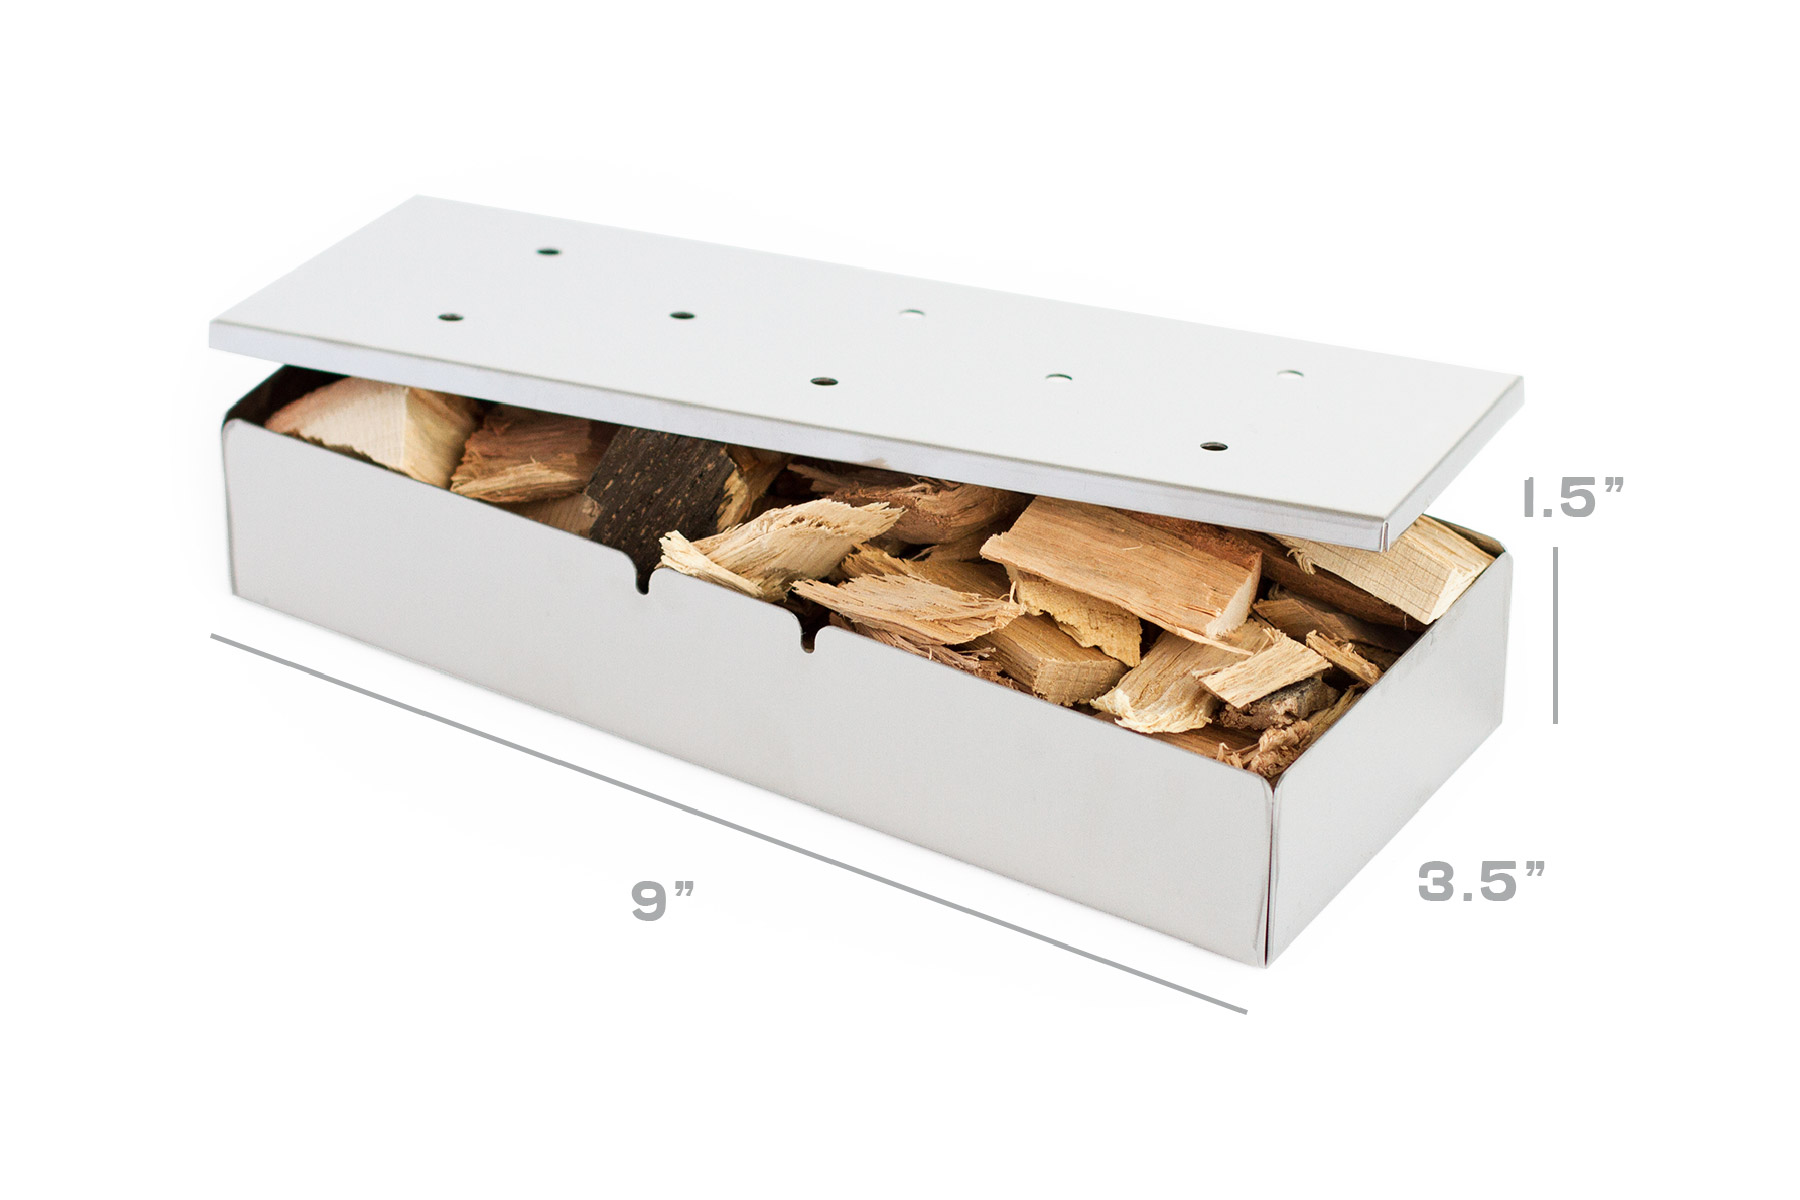 Wood chip box with dimensions